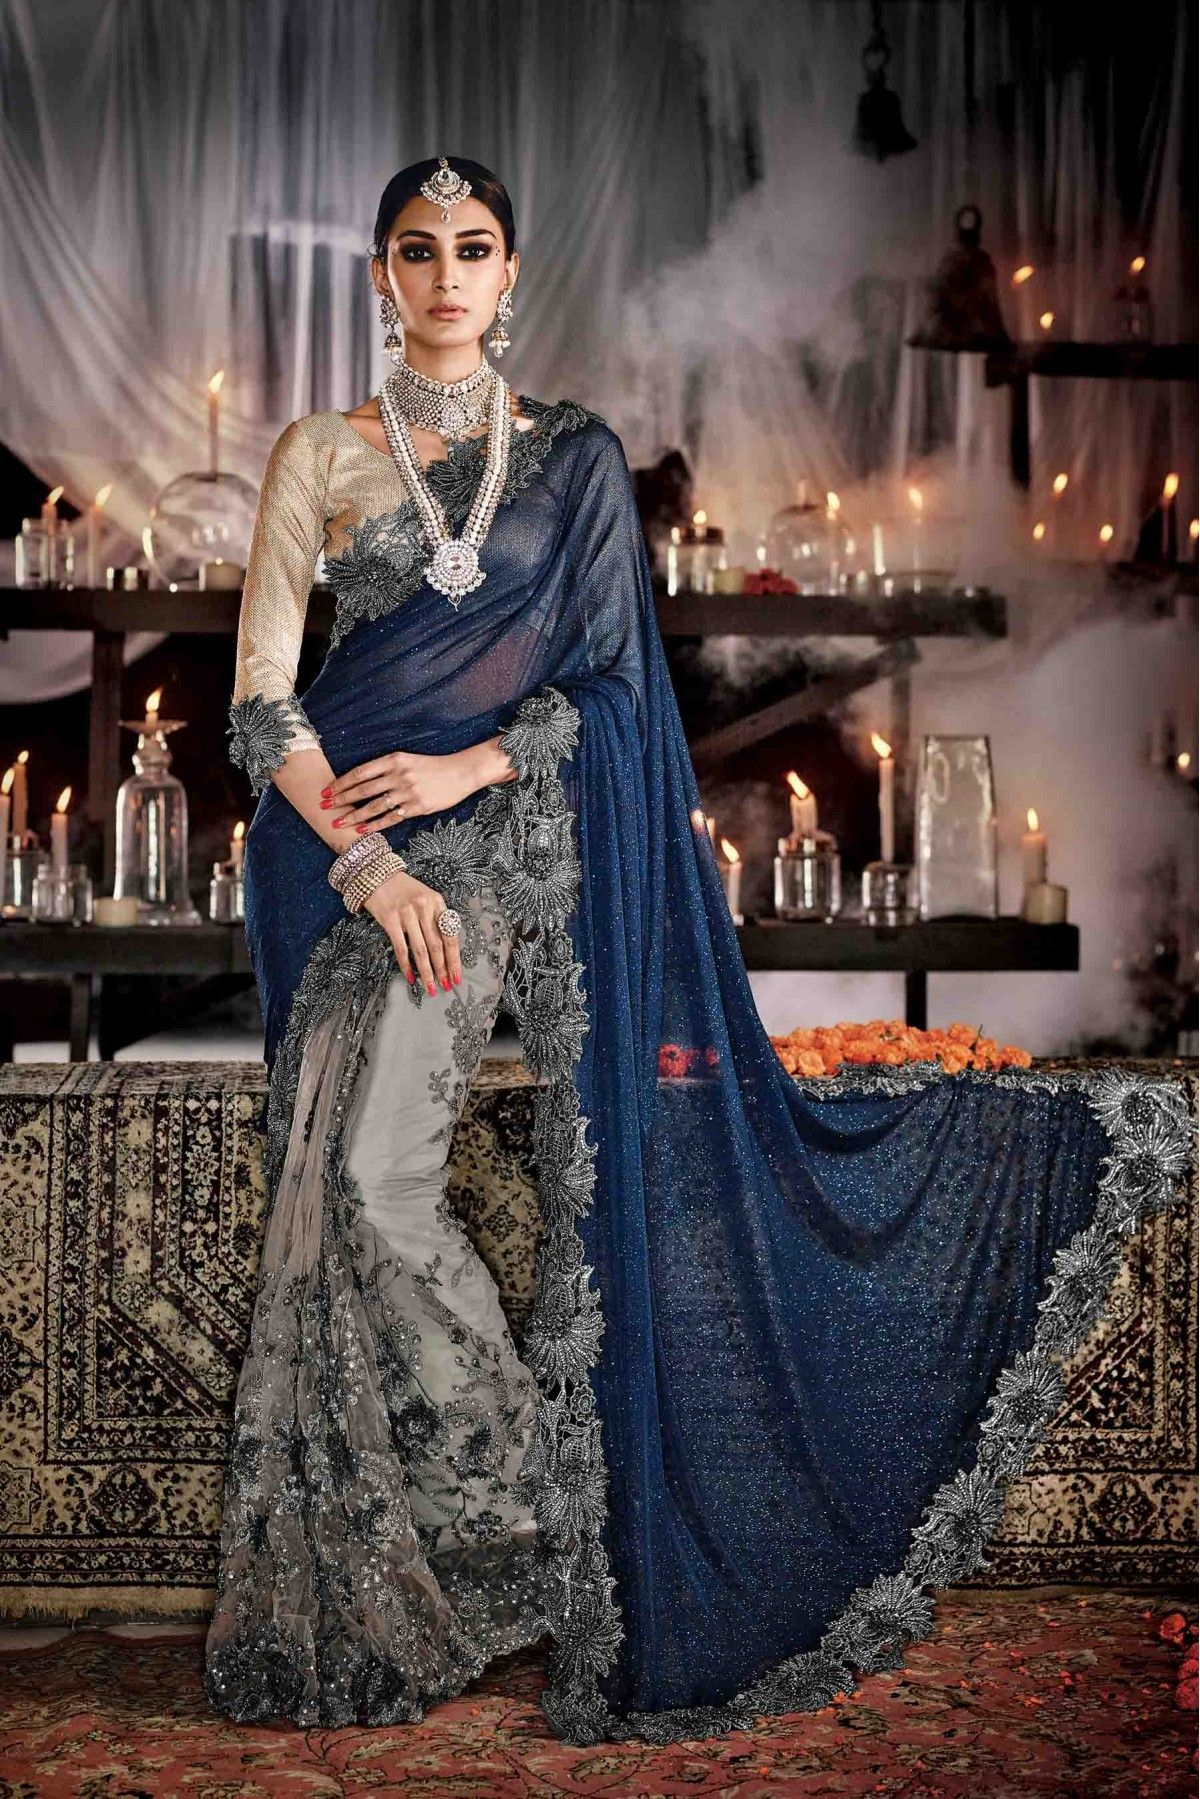 90faca283 Grey and Blue Colour Net and Lycra Fabric Wedding Wear Designer Saree Comes  With Matching Banarasi Brocade Fabric Blouse. This Saree Is Crafted With  Zari ...